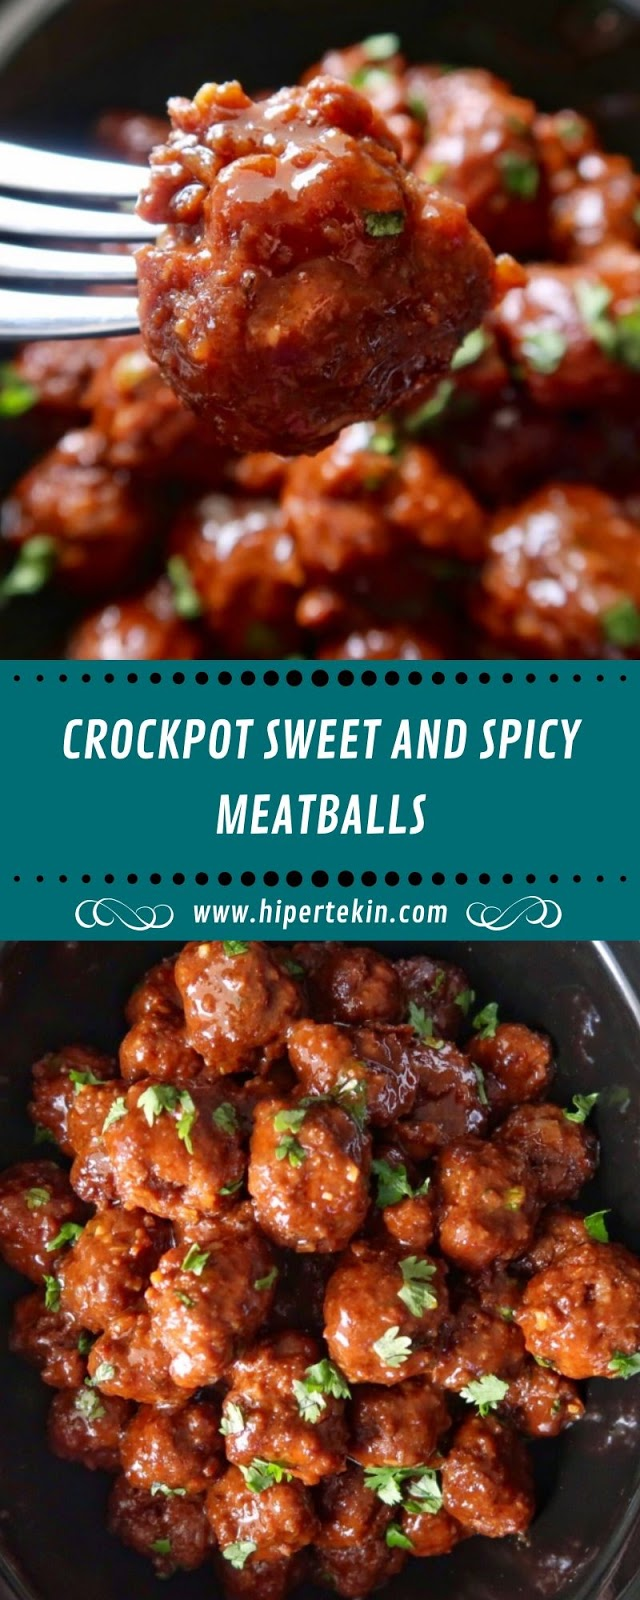 CROCKPOT SWEET AND SPICY MEATBALLS